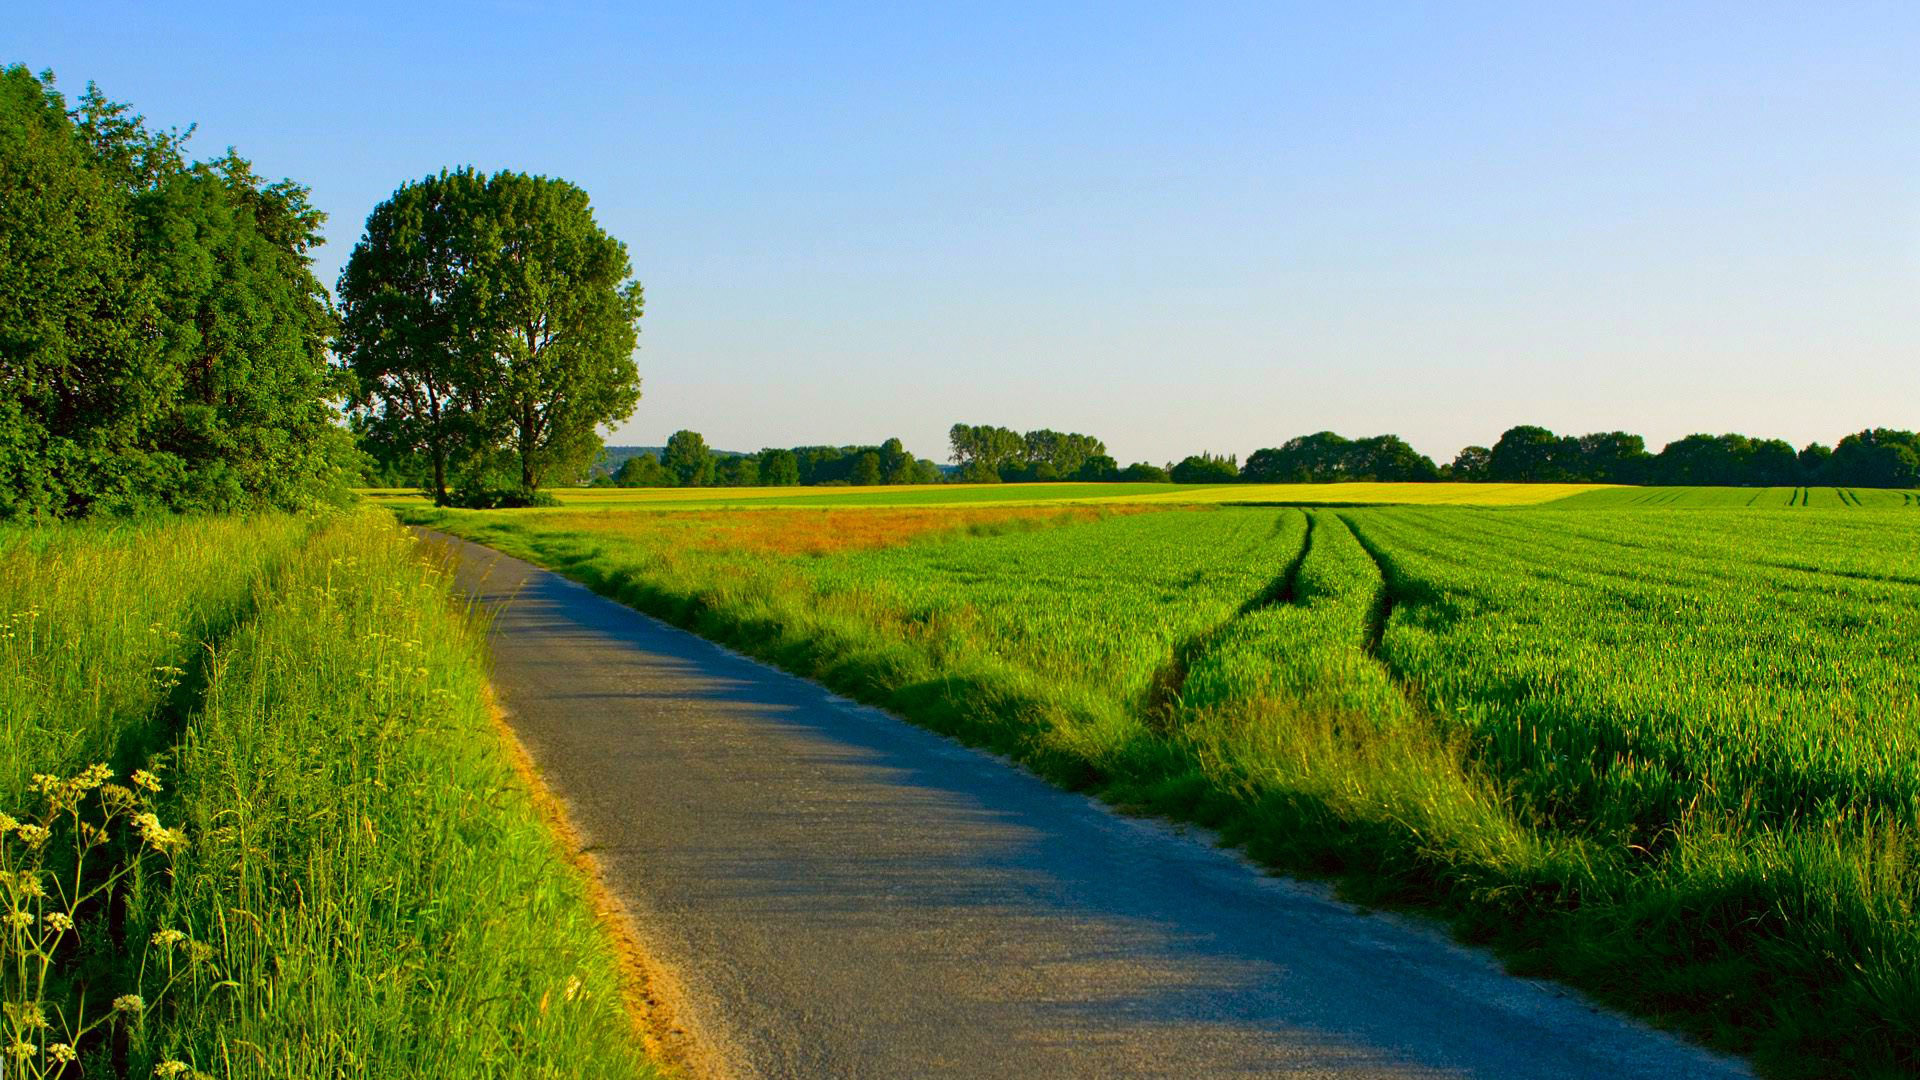 Summer Country Road Wallpaper 2 Card From User Stas In Yandex